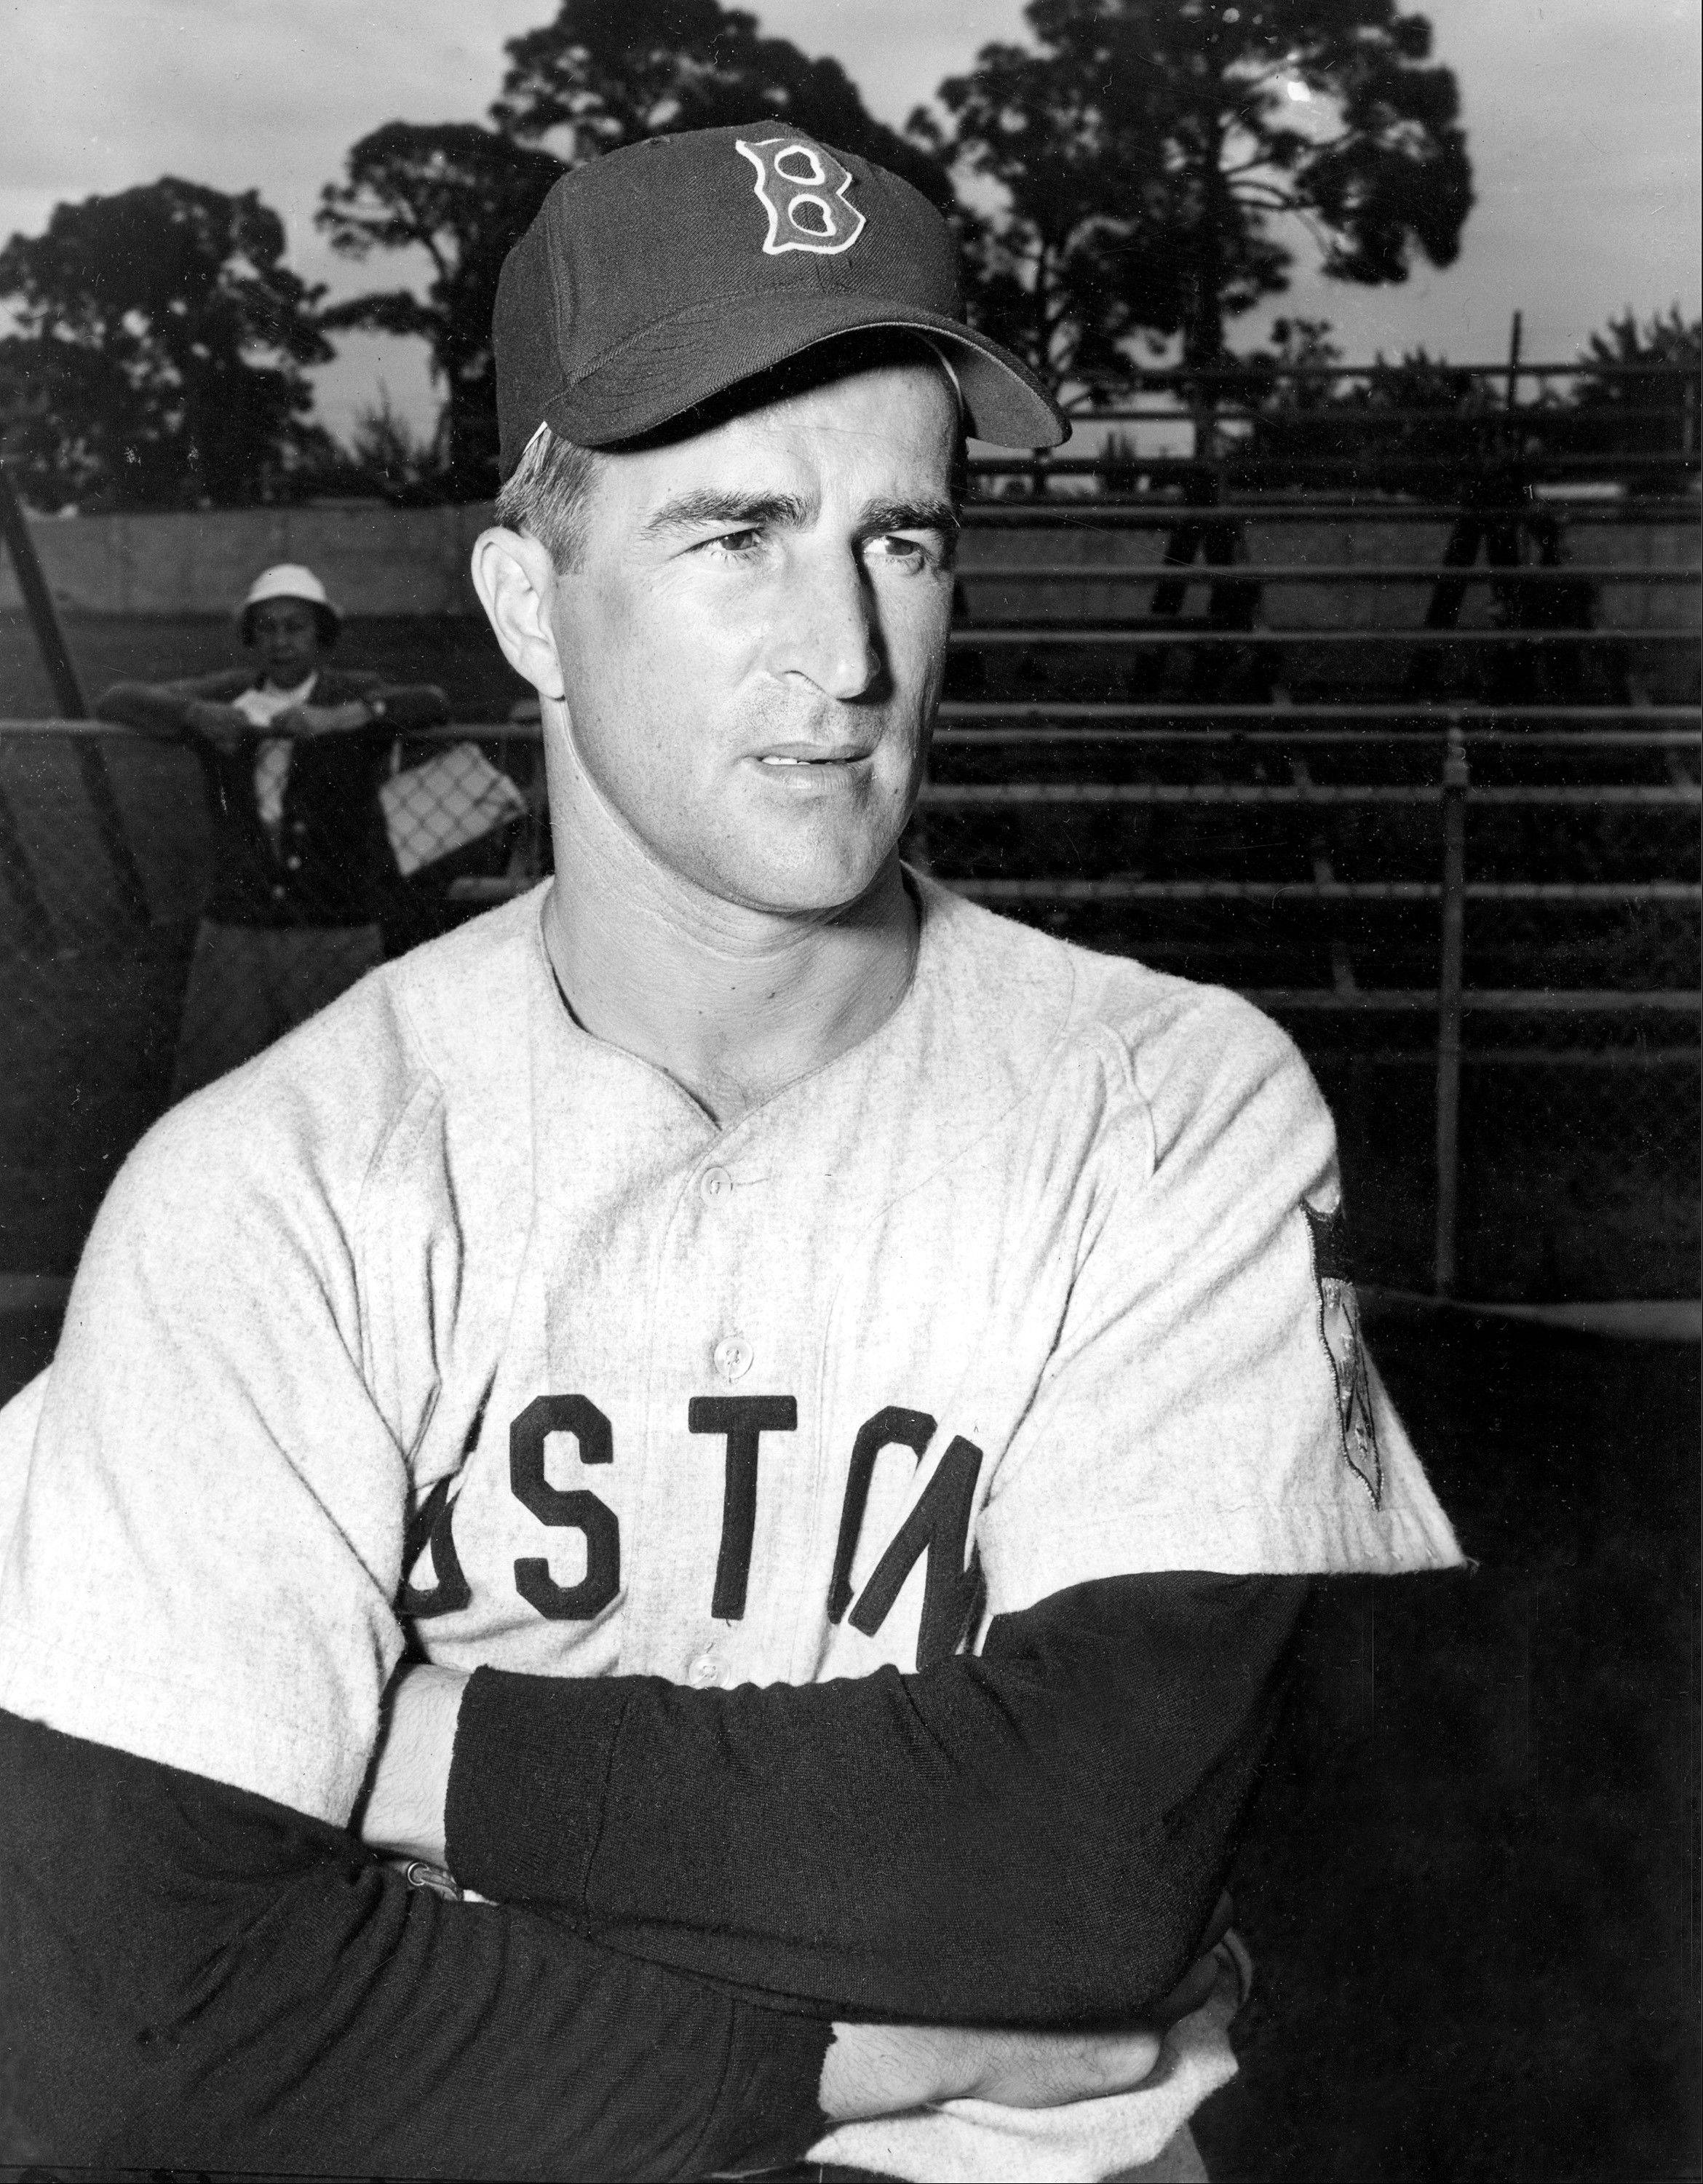 This Feb. 26, 1952, file photo shows Boston Red Sox infielder Johnny Pesky during baseball spring training in Sarasota, Fla. Pesky, who spent most of his 60-plus years in pro baseball with the Red Sox and was beloved by the team's fans, has died on Monday, Aug. 13, 2012, in Danvers, Mass. He was 92.